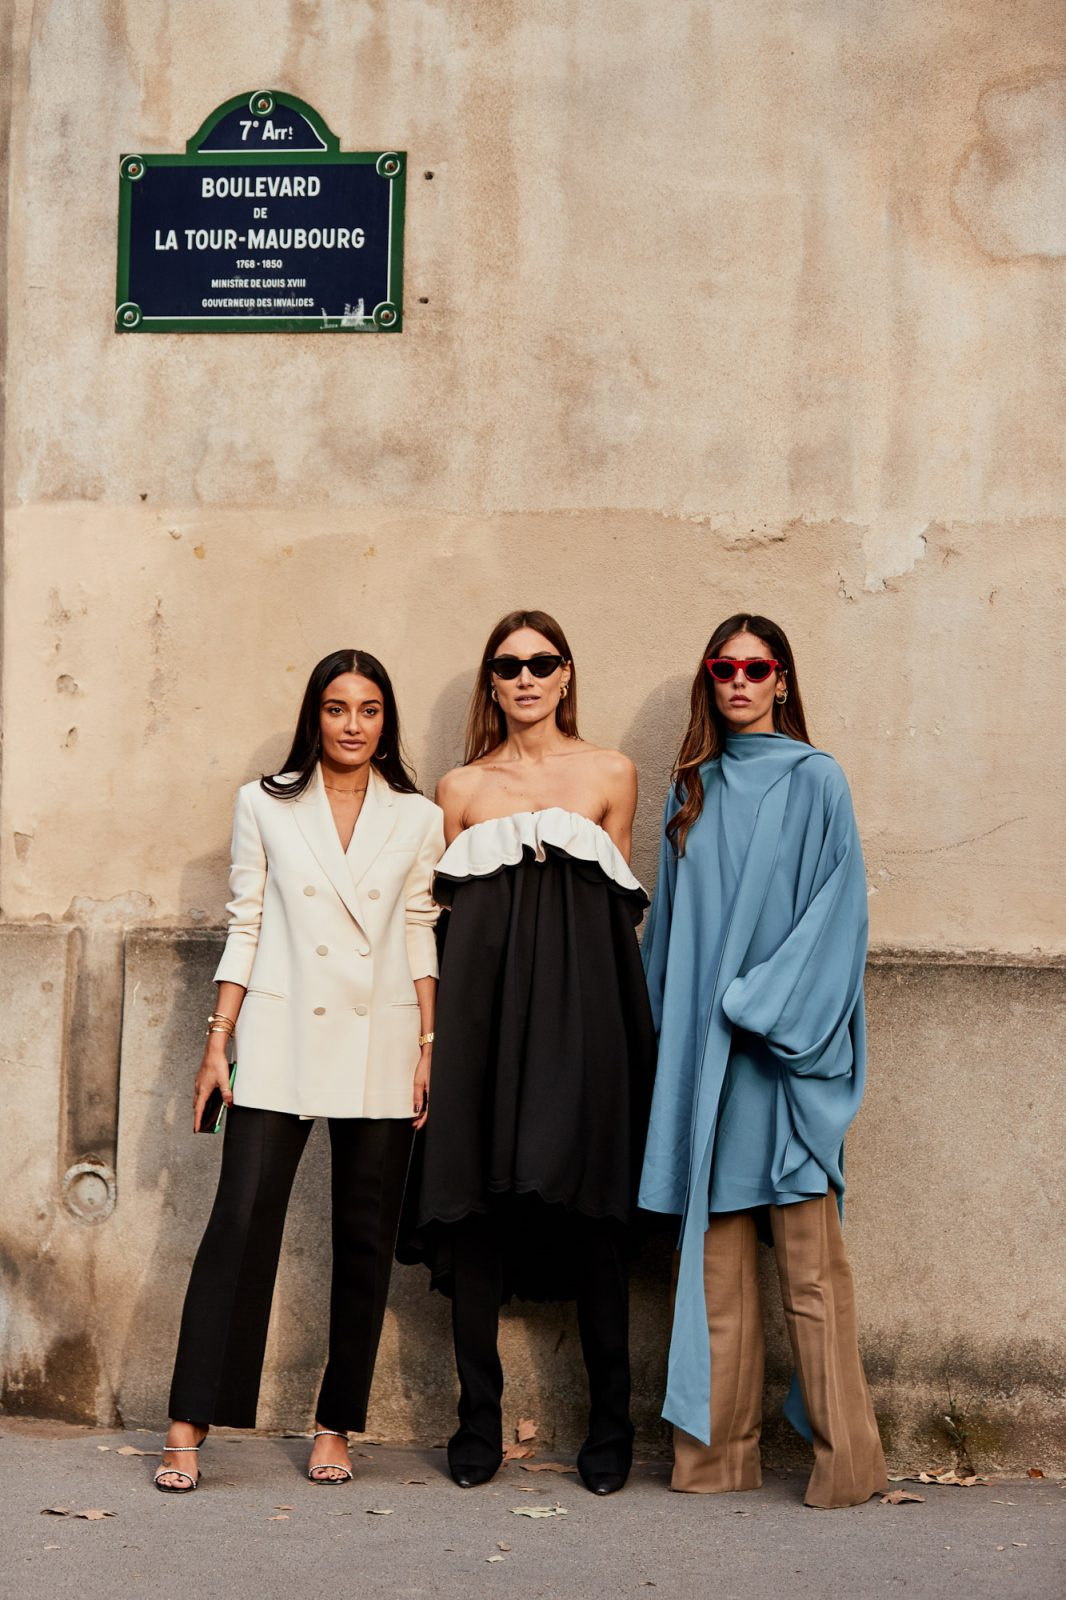 3 more models from s/s paris fashion week